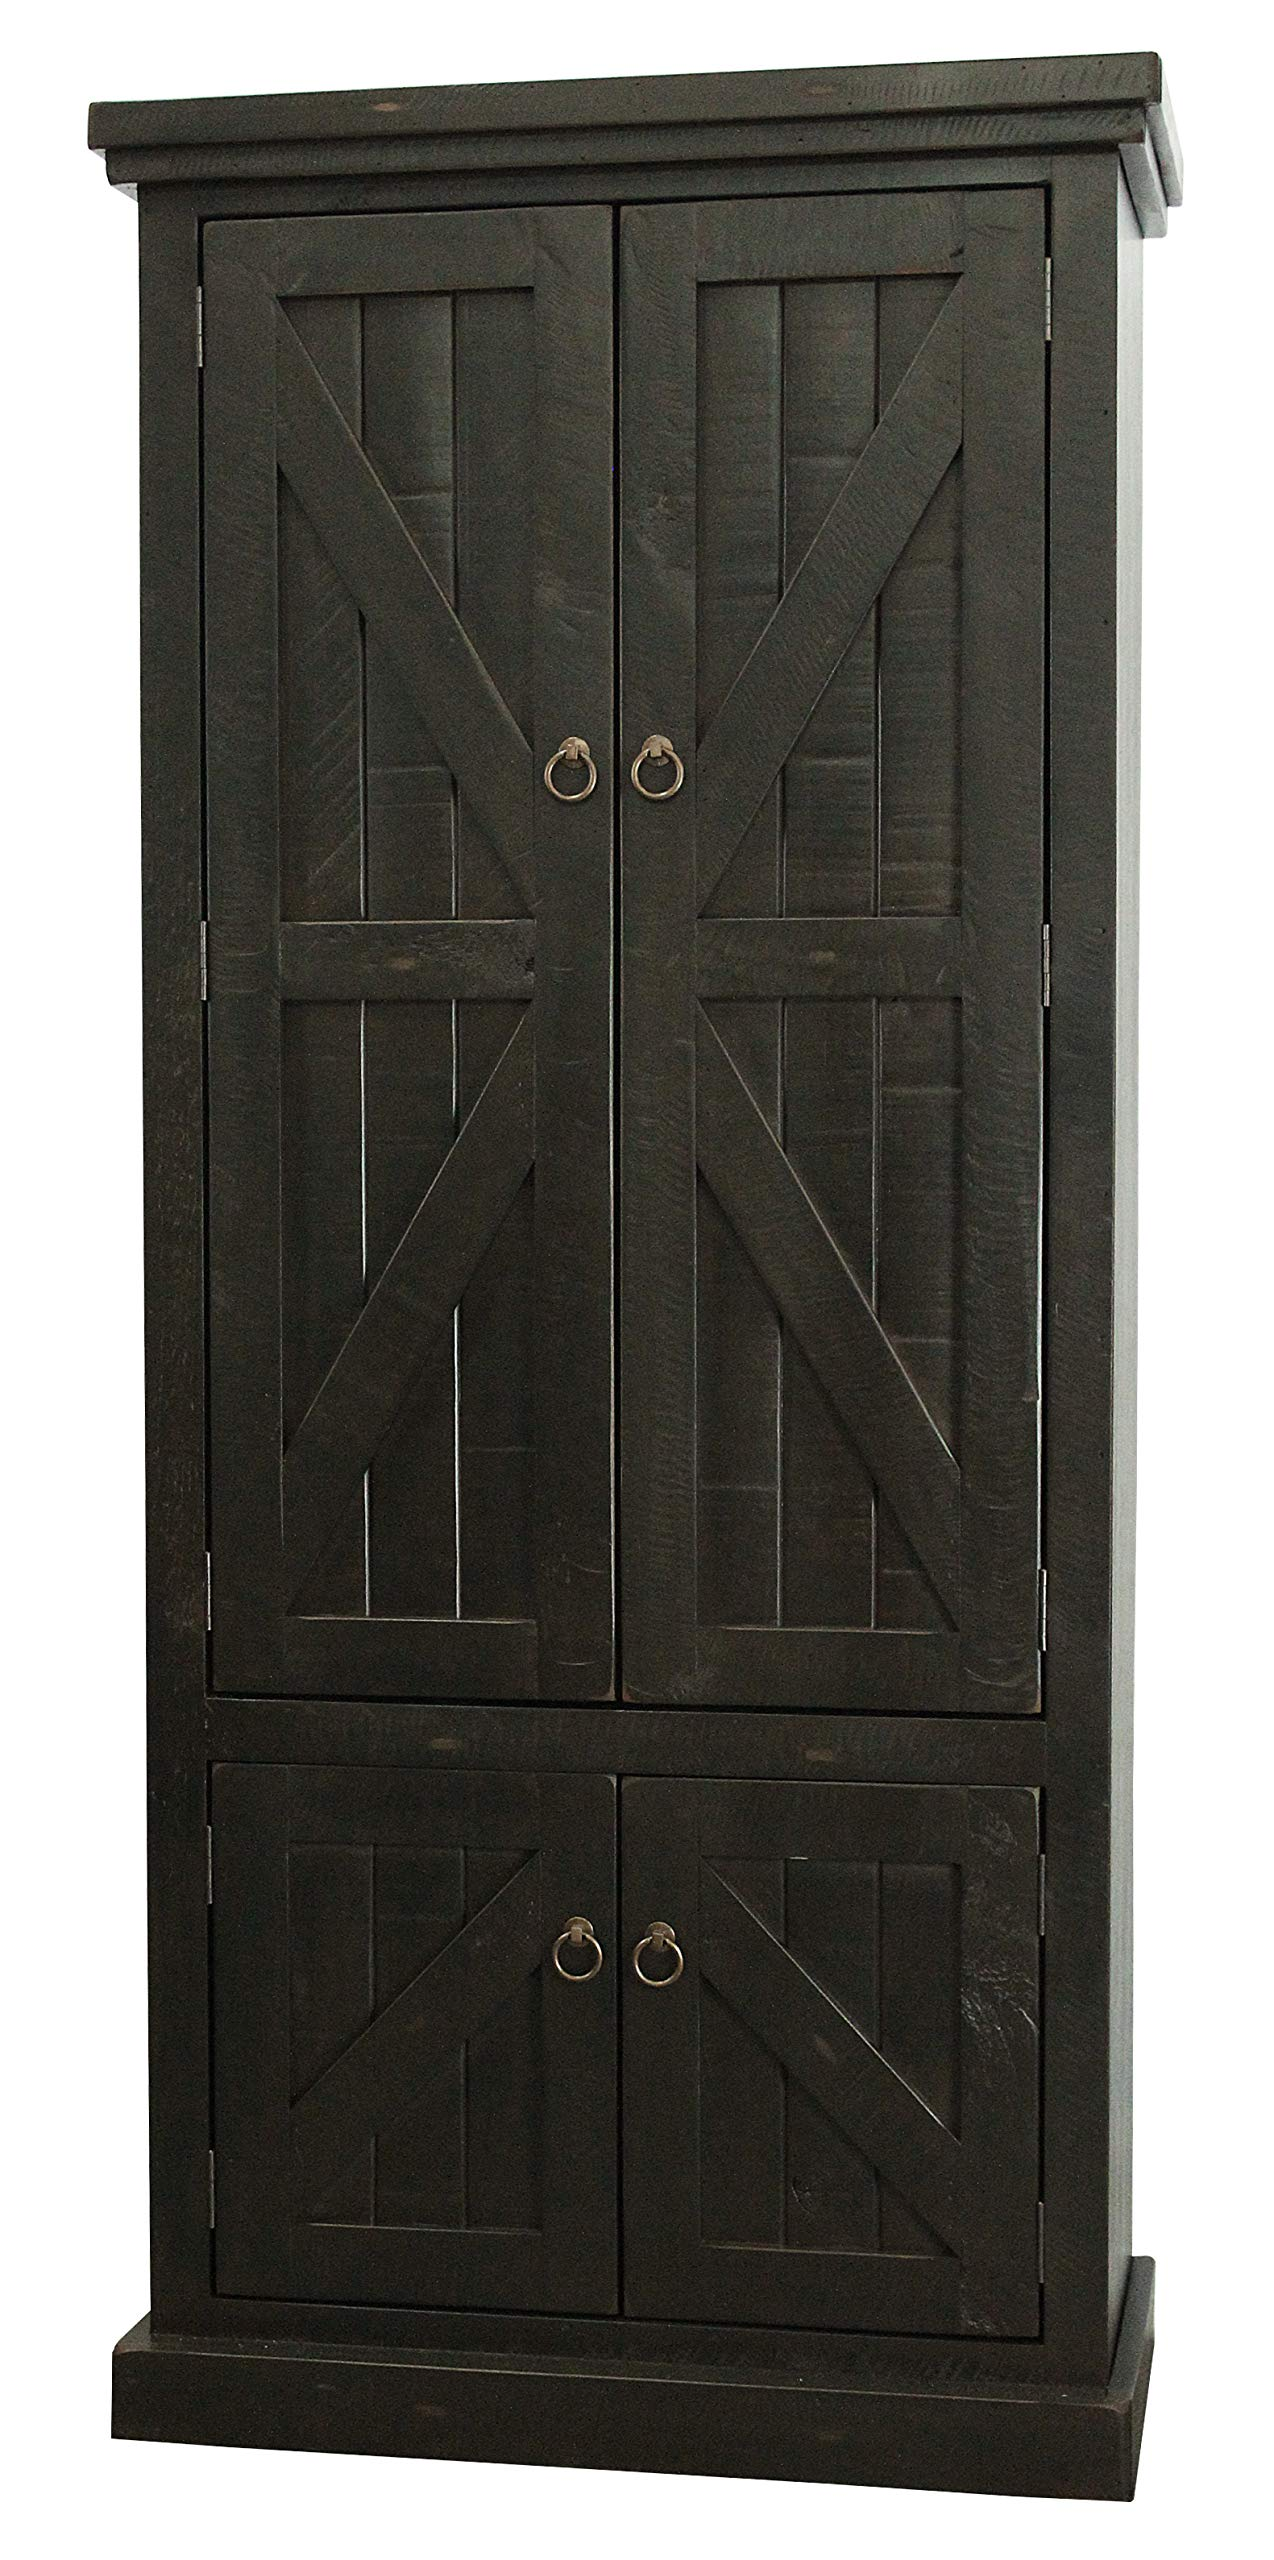 American Heartland #30791RBK Rustic Double Door Pantry, Rustic Antique Black